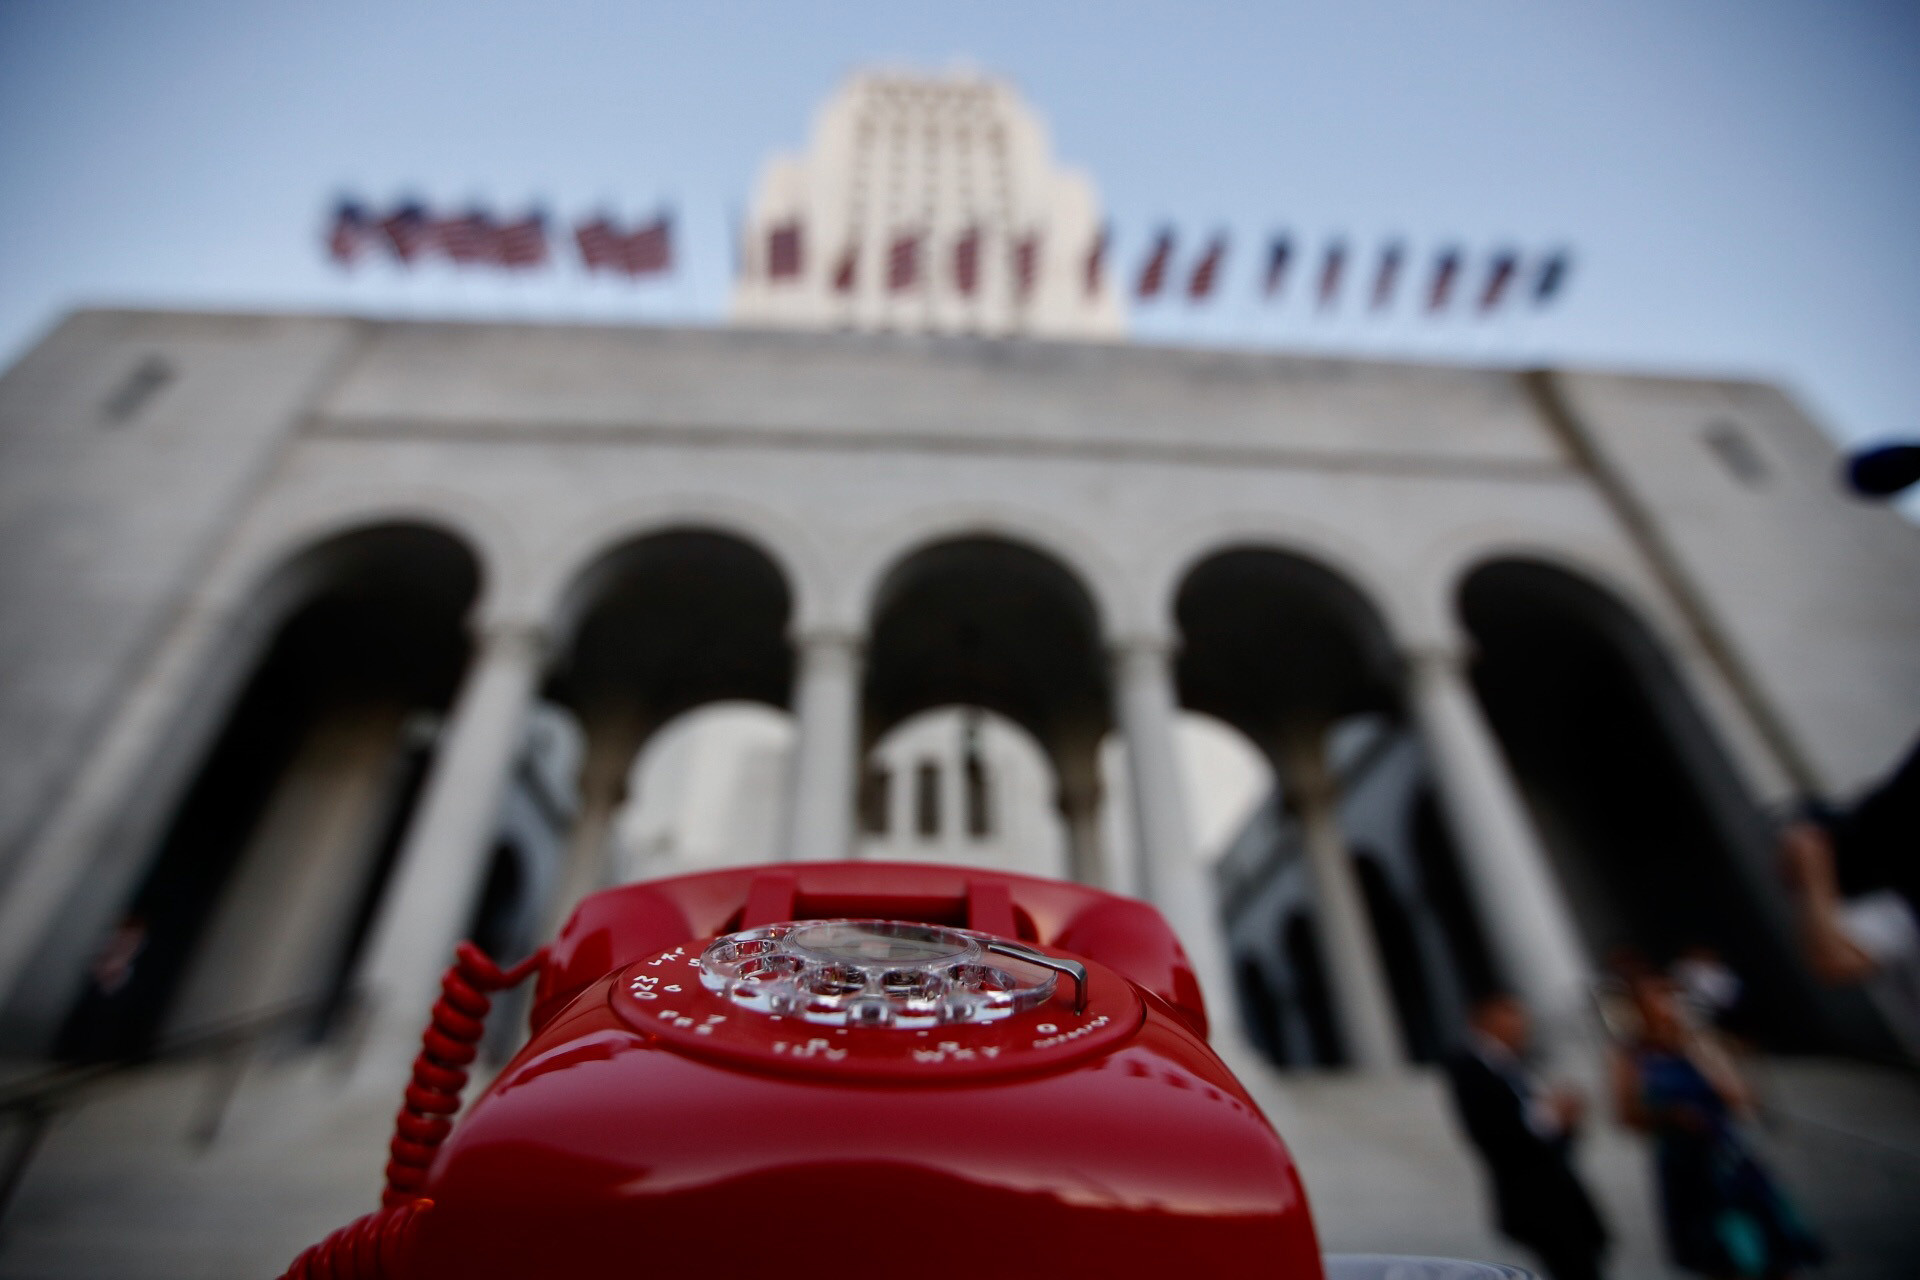 A Bat phone stand-in awaits the commissioner's call in front of L.A. City Hall during a tribute to Adam West on June 15. (Francine Orr / Los Angeles Times)